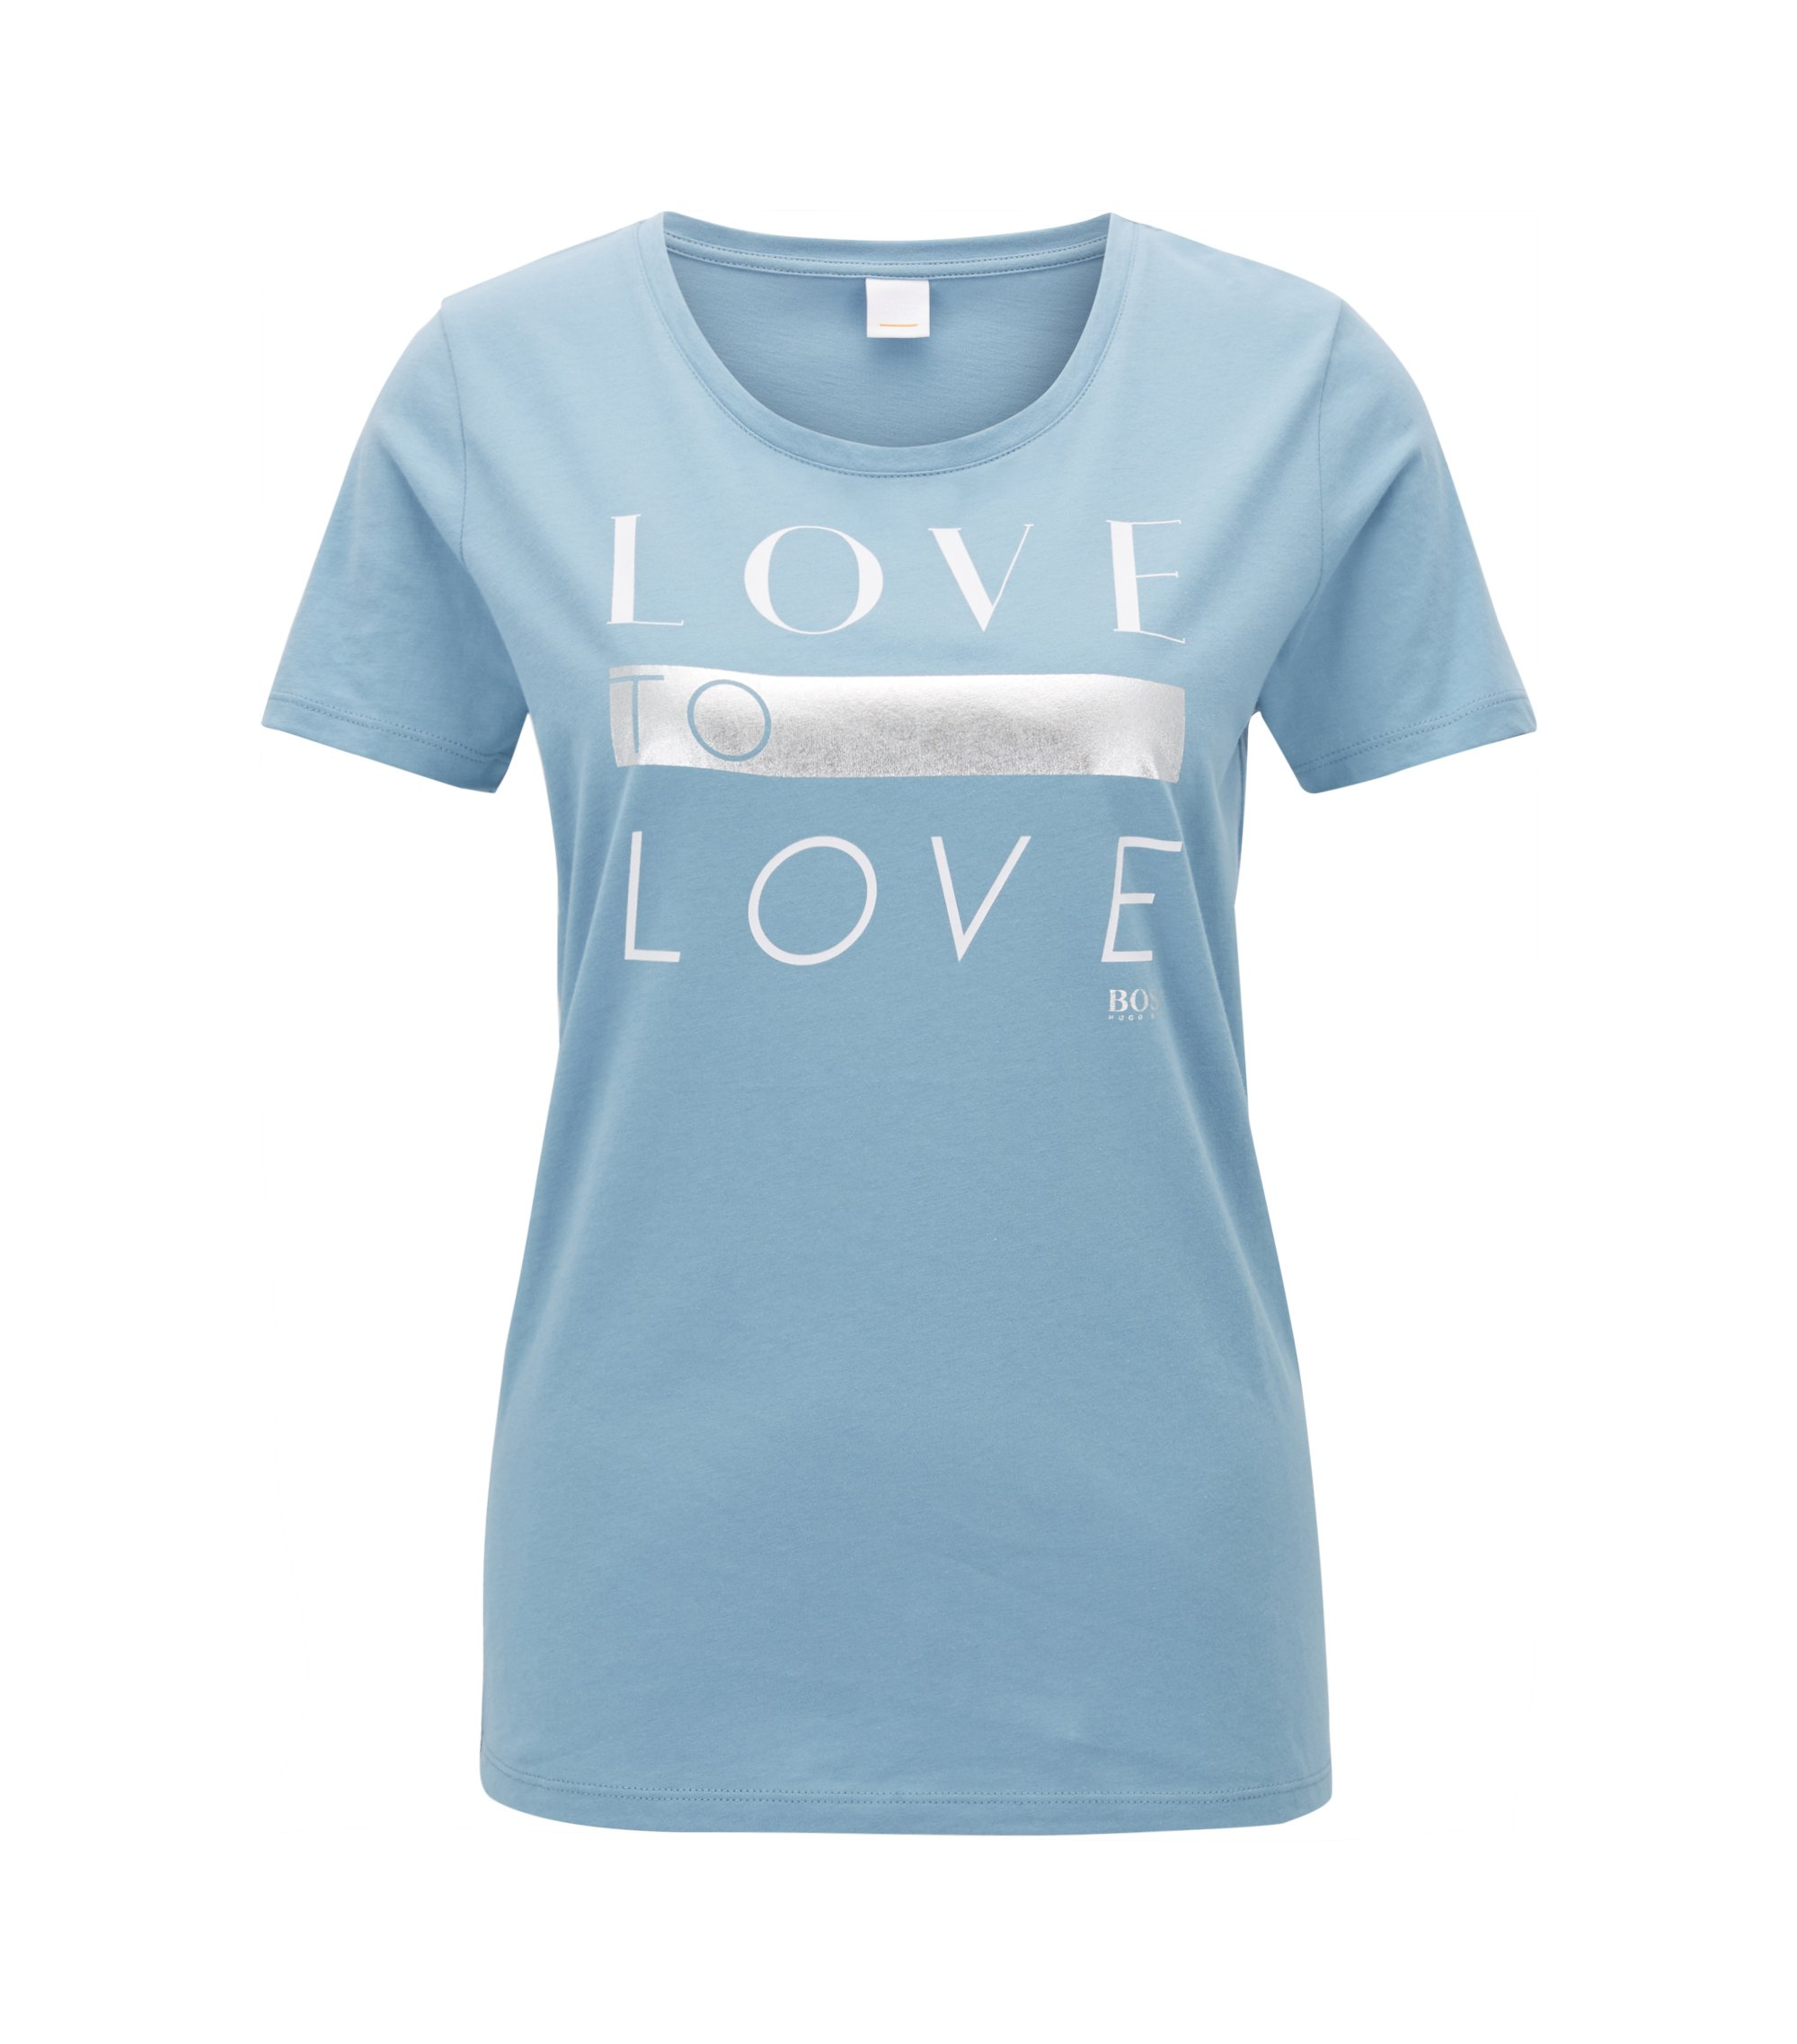 Cotton-jersey T-shirt with printed slogan, Light Blue